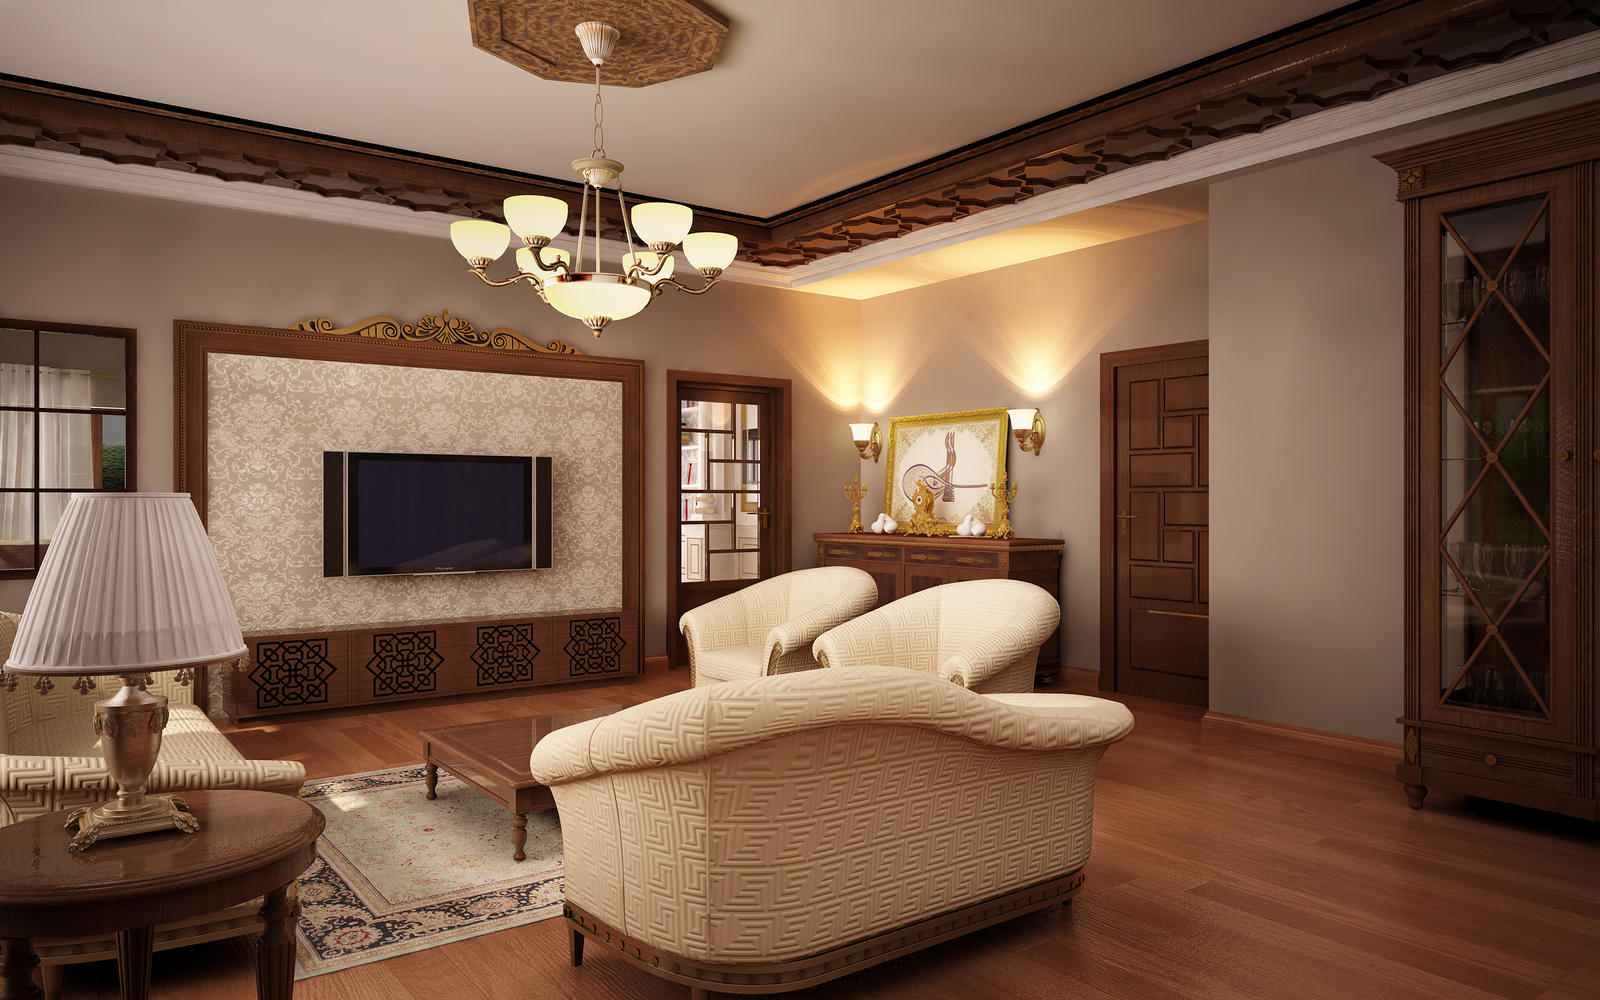 gypsum chat rooms Chat call us help track order home ⁄ living room ⁄ living room furniture ⁄ accent chairs ⁄ gypsum charcoal accent chair by signature design by ashley  when my parents came over for dinner yesterday, i couldn't wait to show them my newly redone room, furnished with the gypsum my mother immediately said it was beautiful.